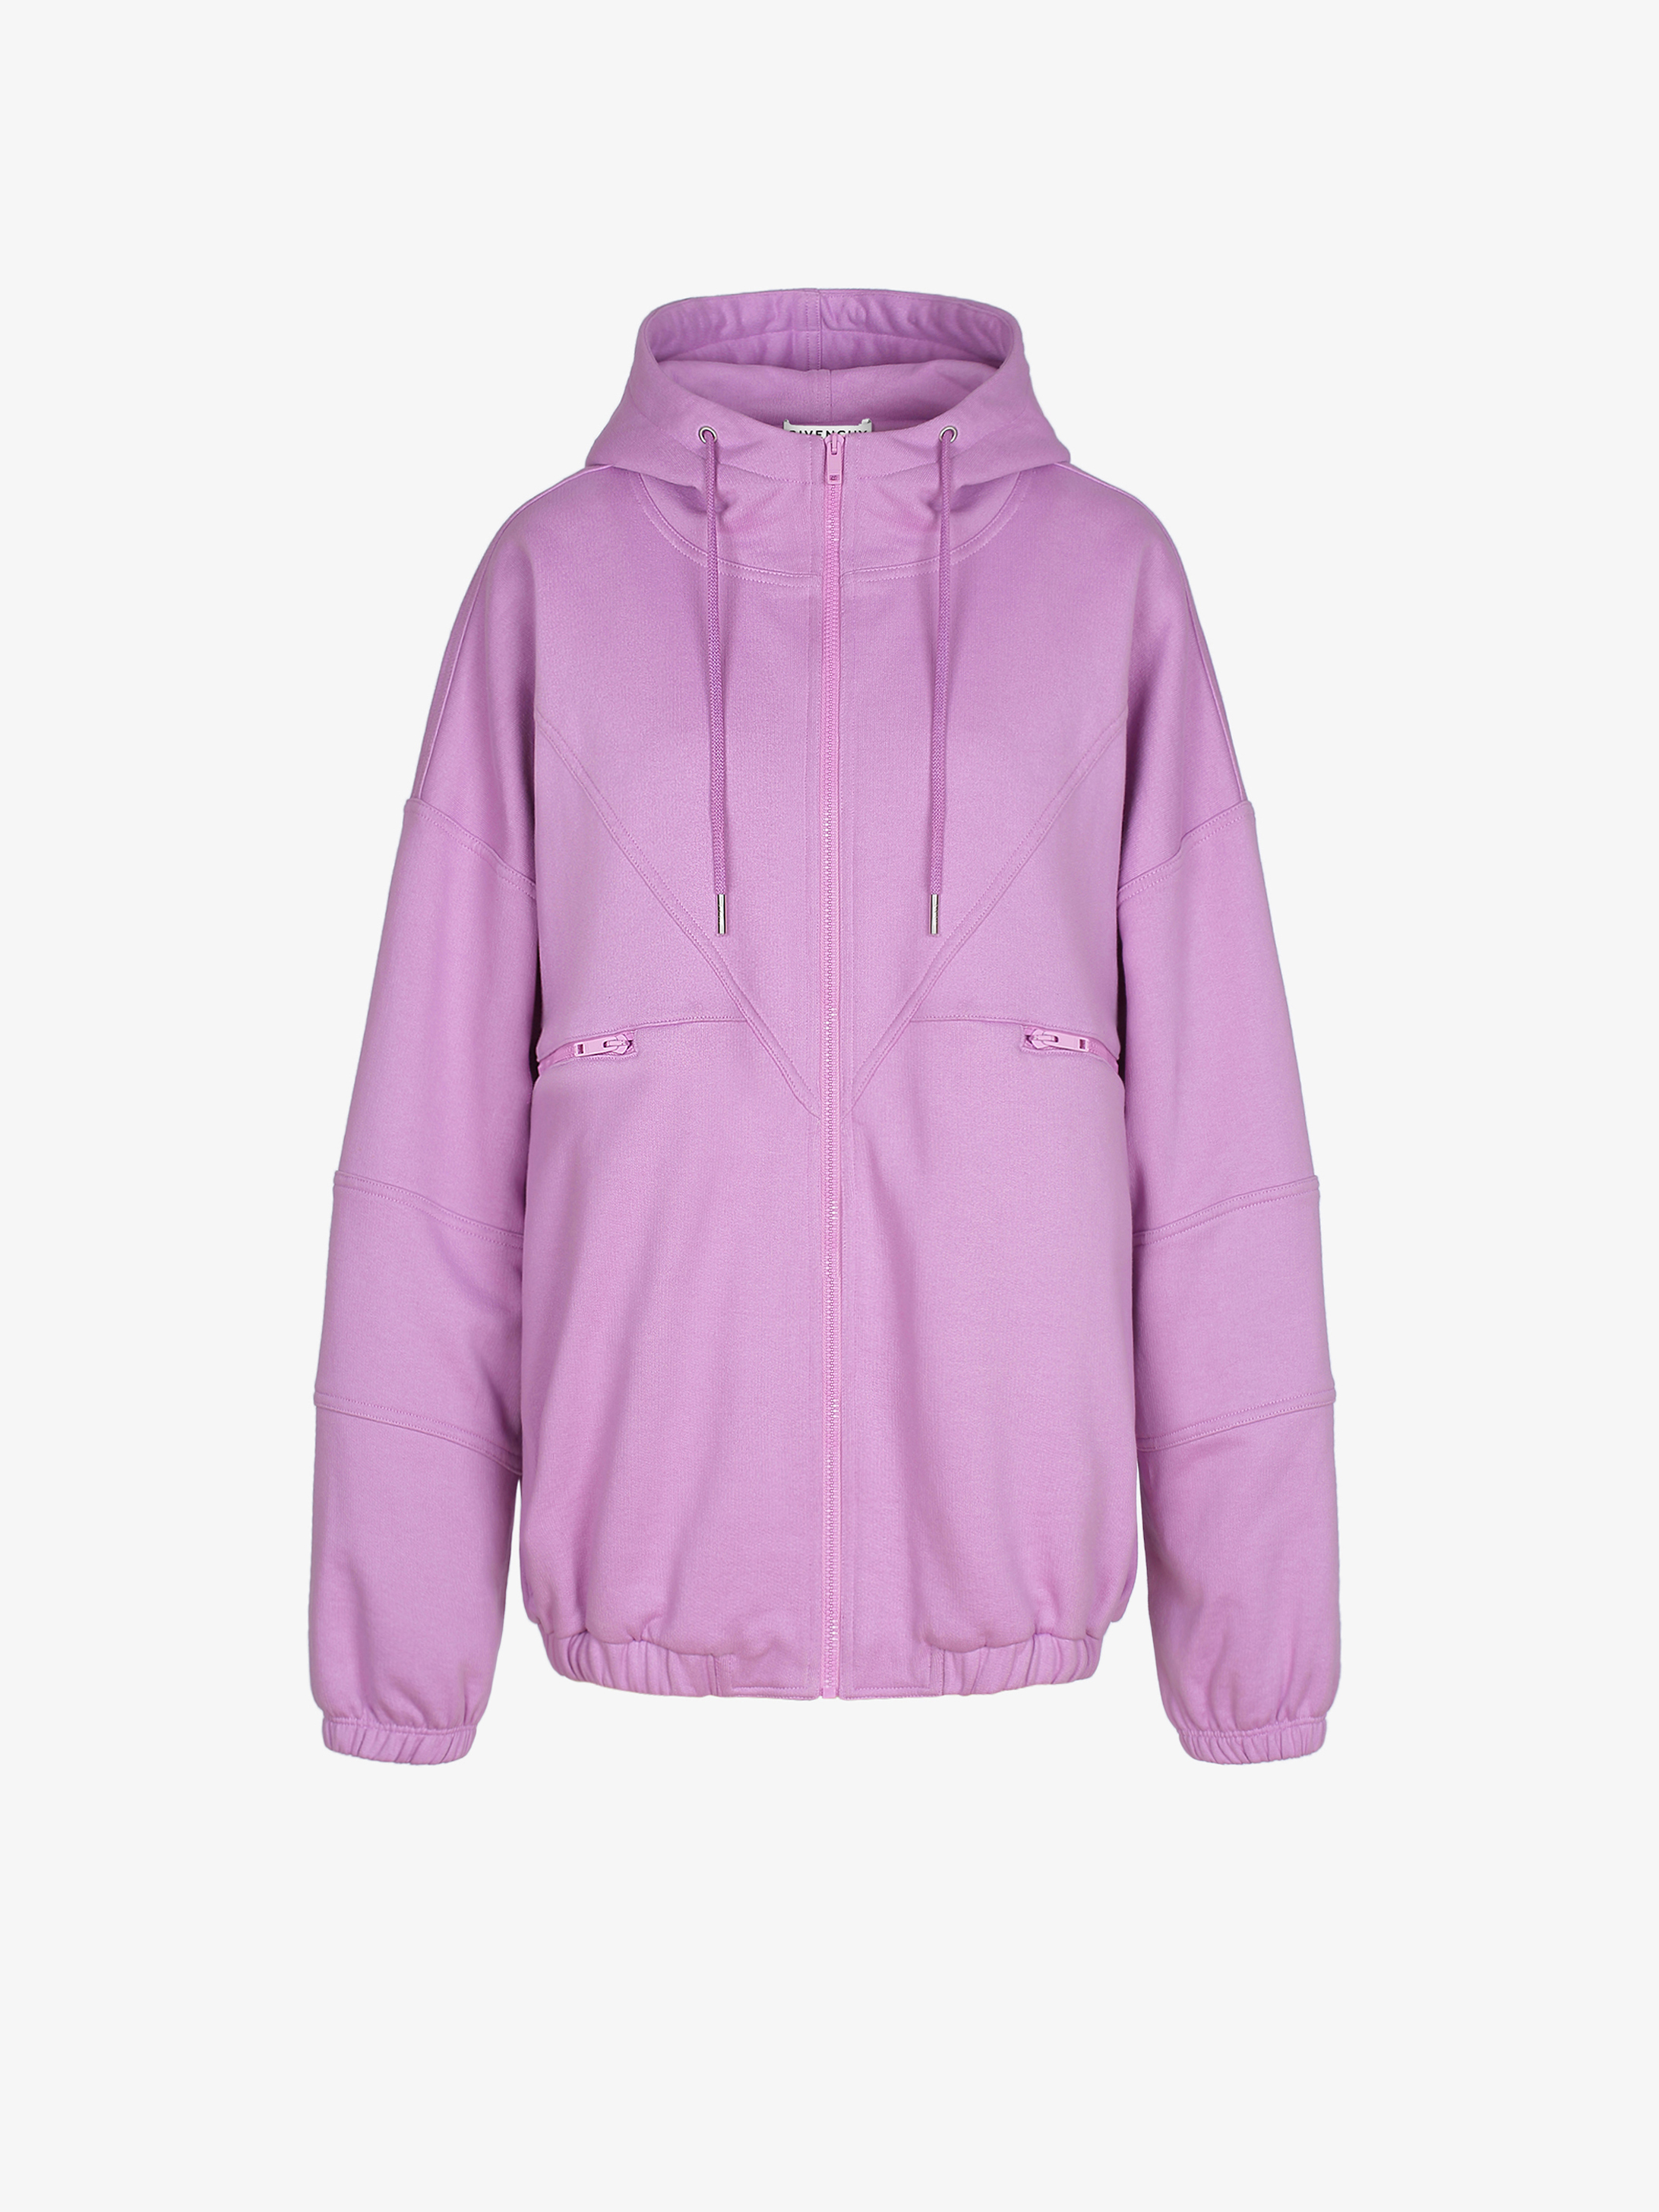 GIVENCHY PARIS zipped hoodie